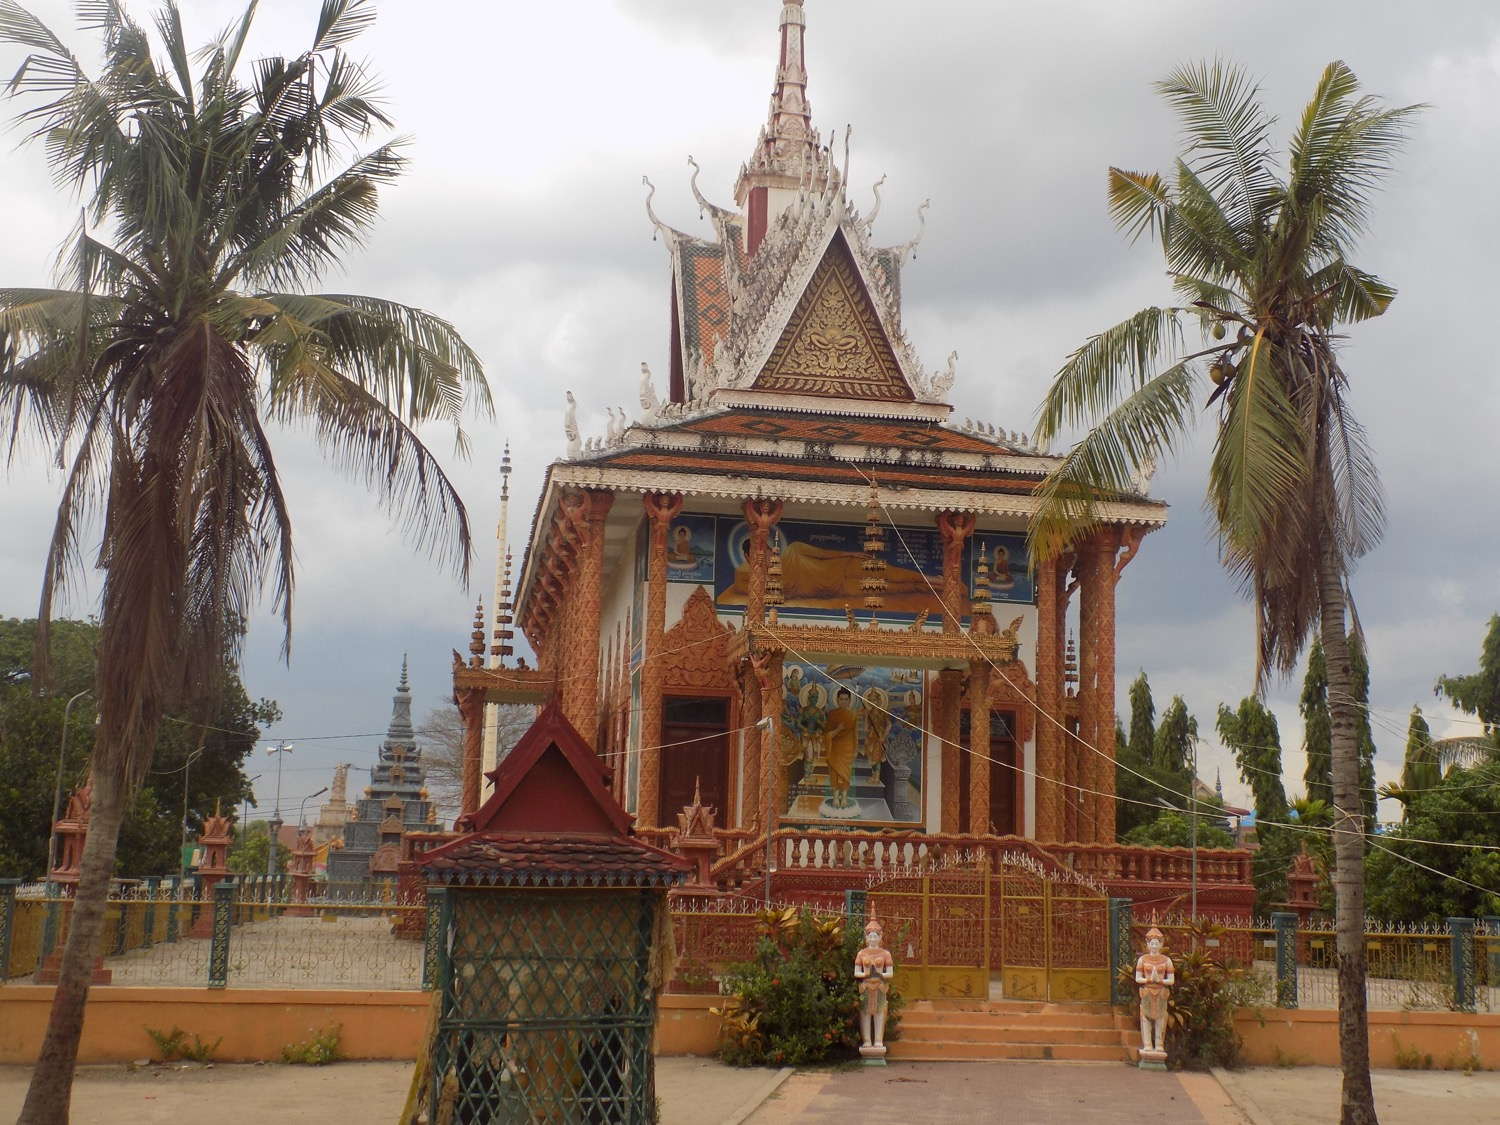 Koh Khel Secondary School is located right next to the village's pagoda.